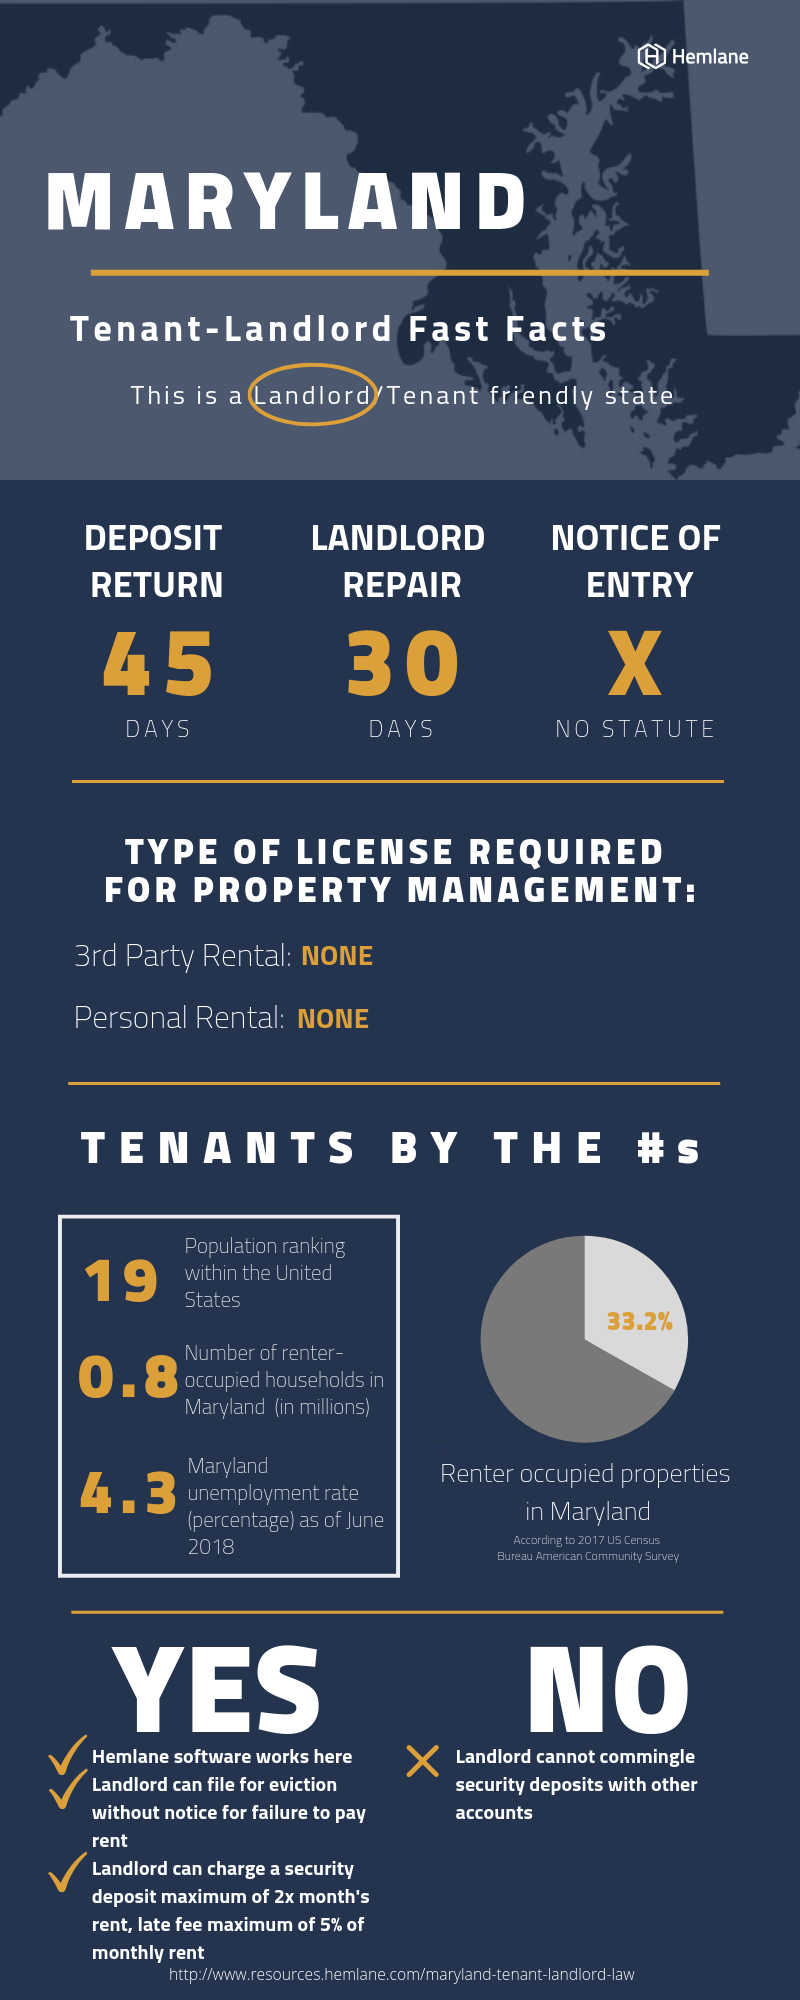 Maryland-Tenant-Landlord-Law-Fast-Facts